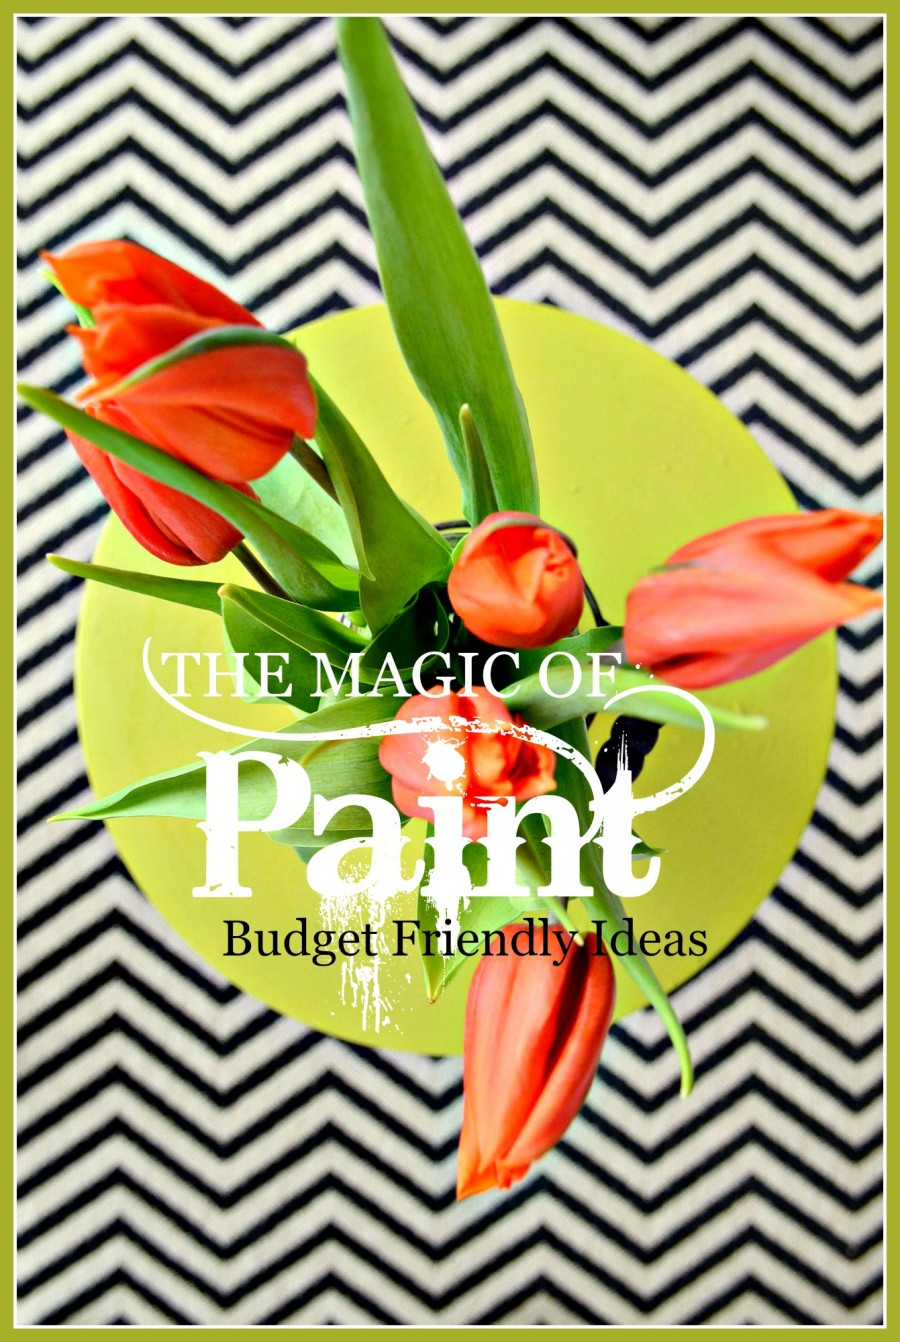 THE MAGIC OF PAINT- BUDGET FRIENDLY IDEAS